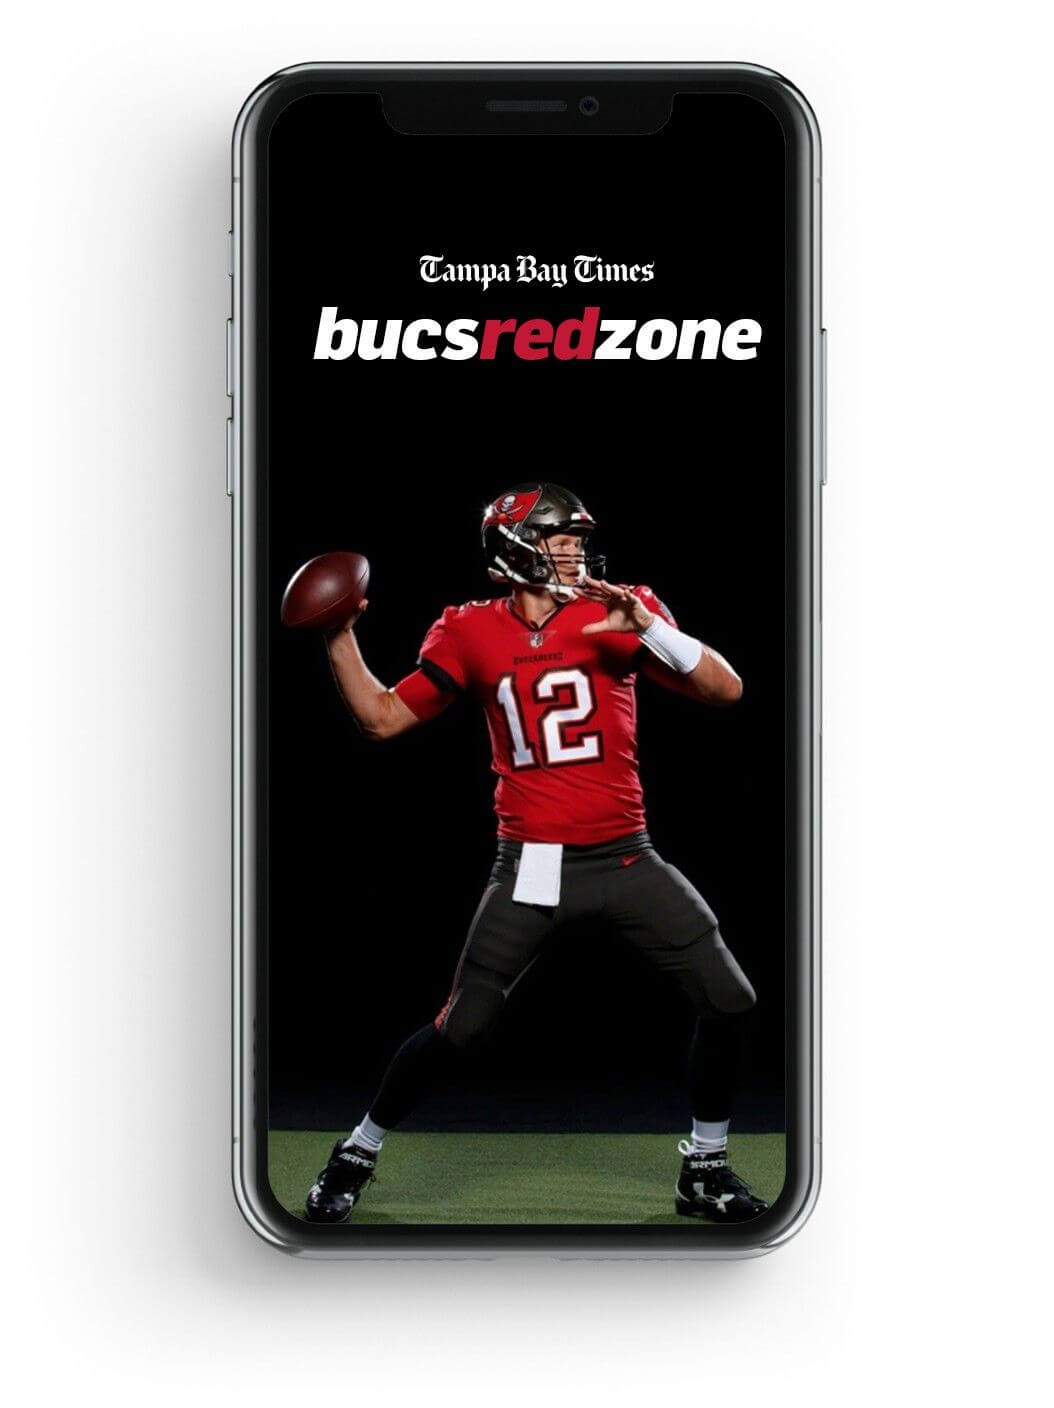 The Tampa Bay Times 'Bucs RedZone' newsletter